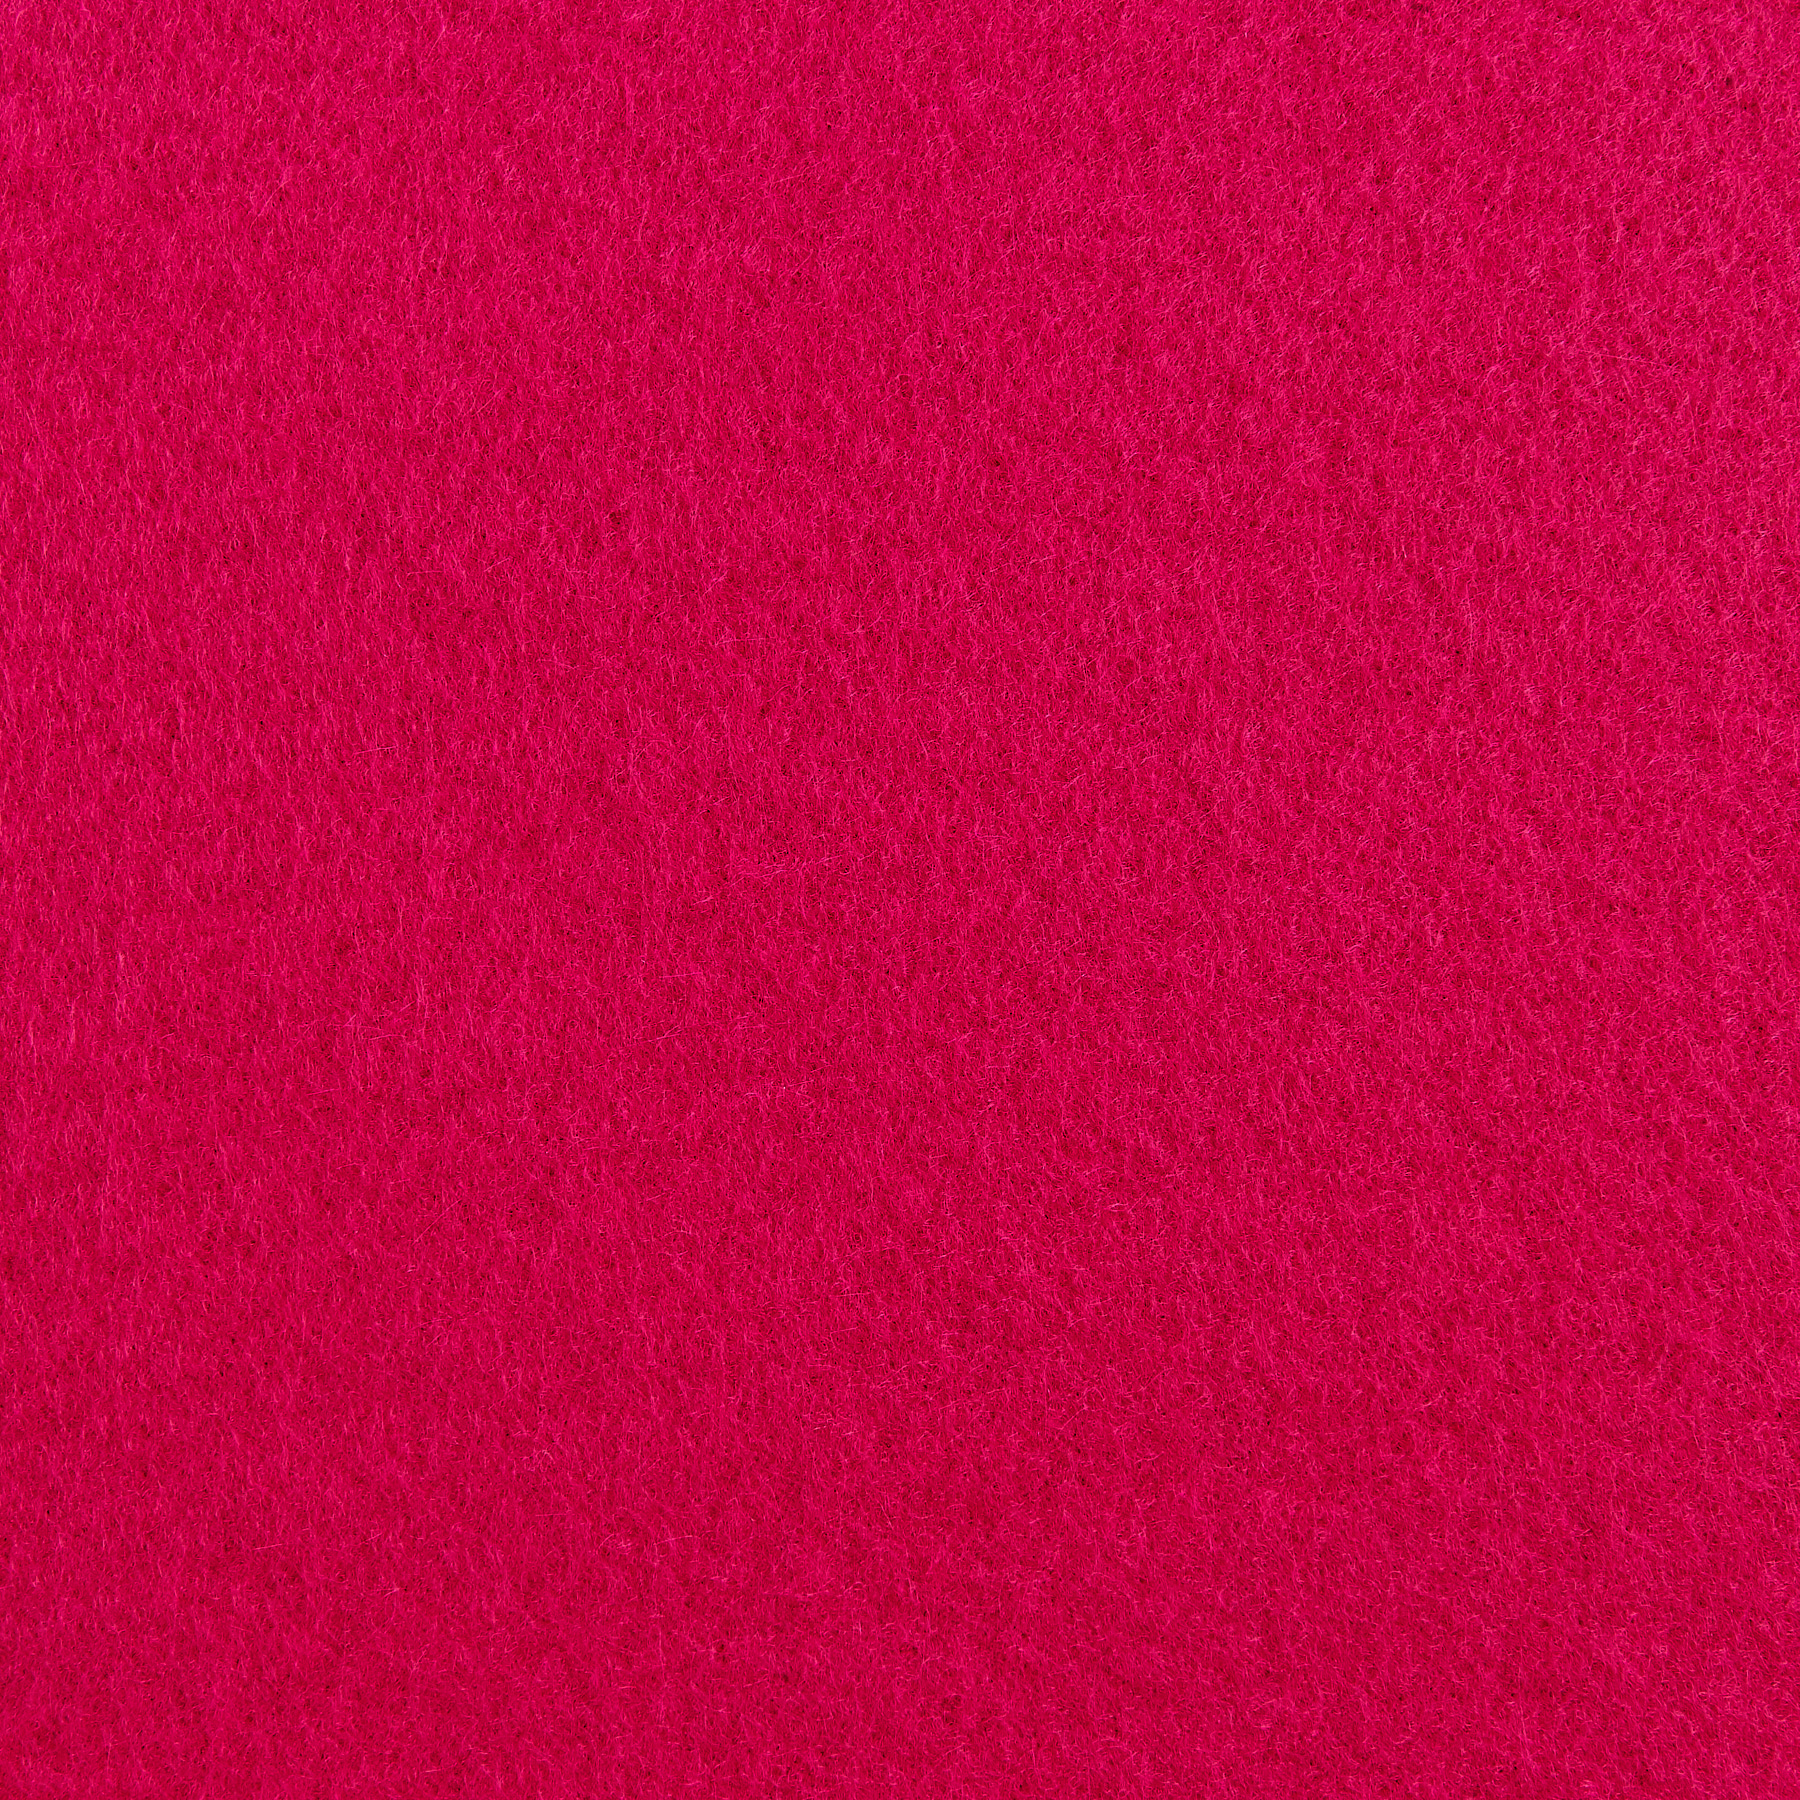 Solid Fleece Fuschia Too Fabric by Textile Creations in USA